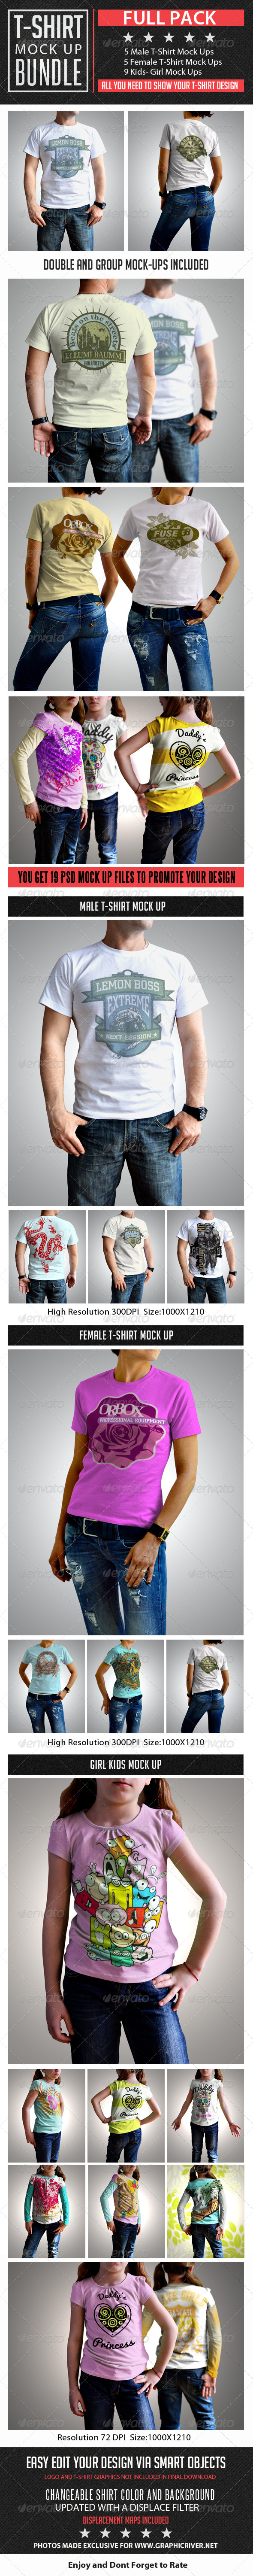 GraphicRiver T-Shirt Mock Up Bundle 7827859